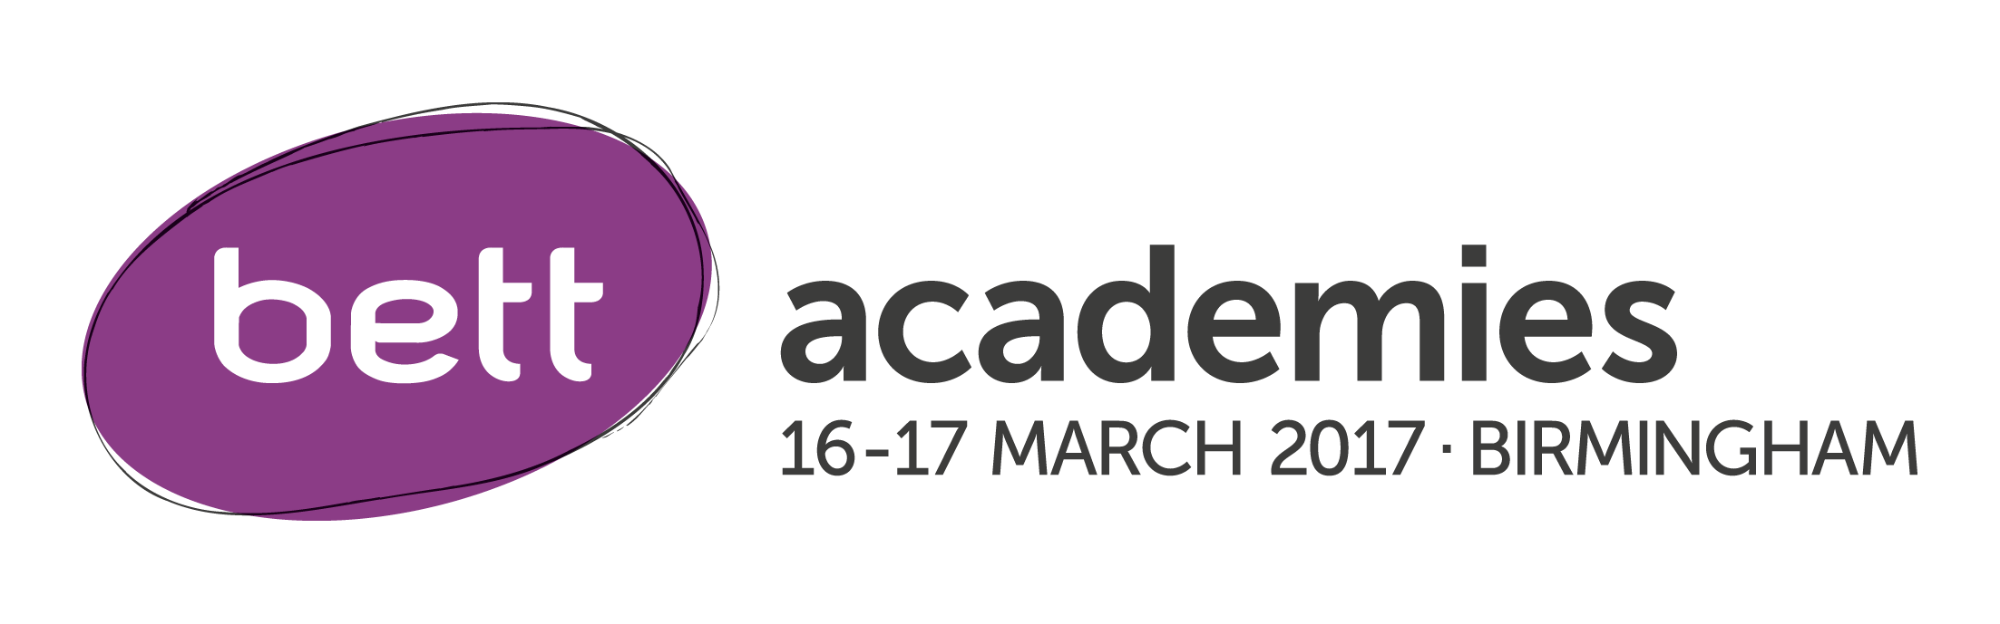 Bodet Class Change Systems at Bett Academies